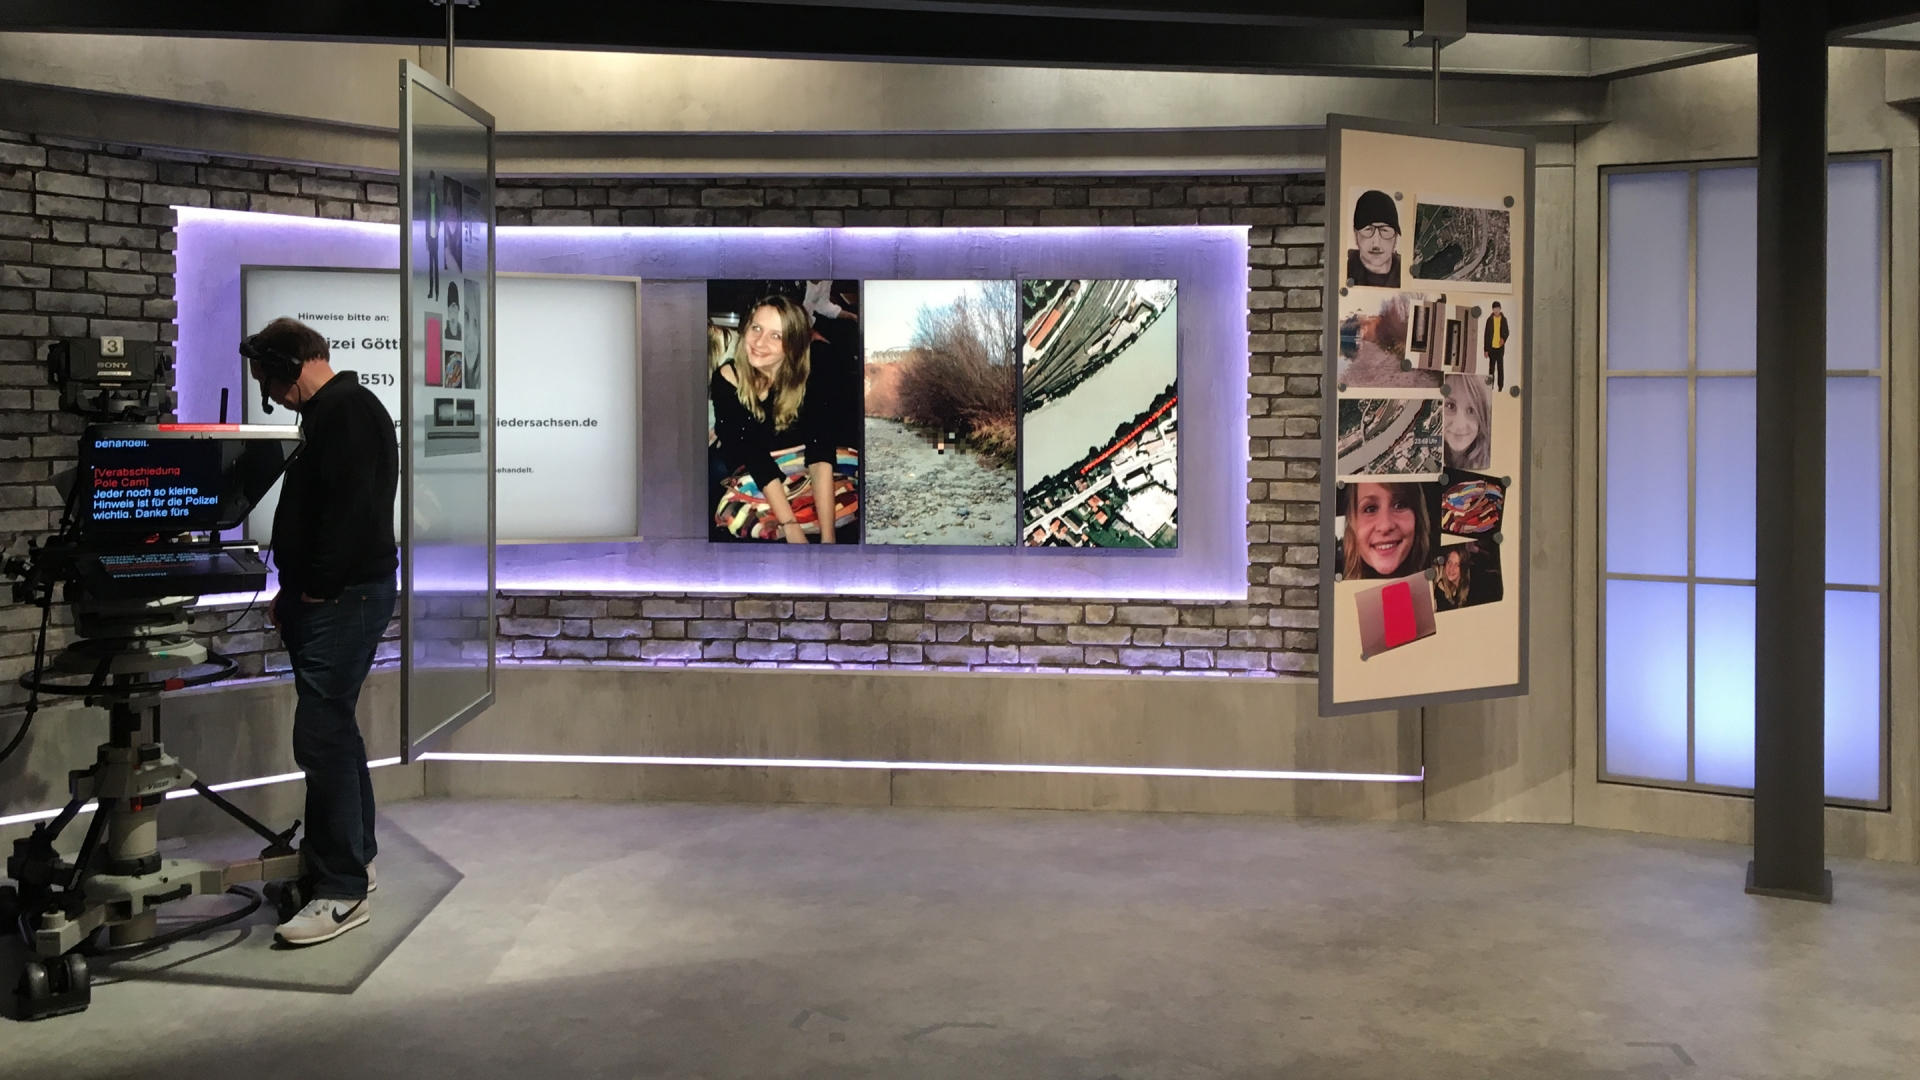 Rtl ii spiegel tv studio set f r ungekl rte f lle for Spiegel tv live stream rtl